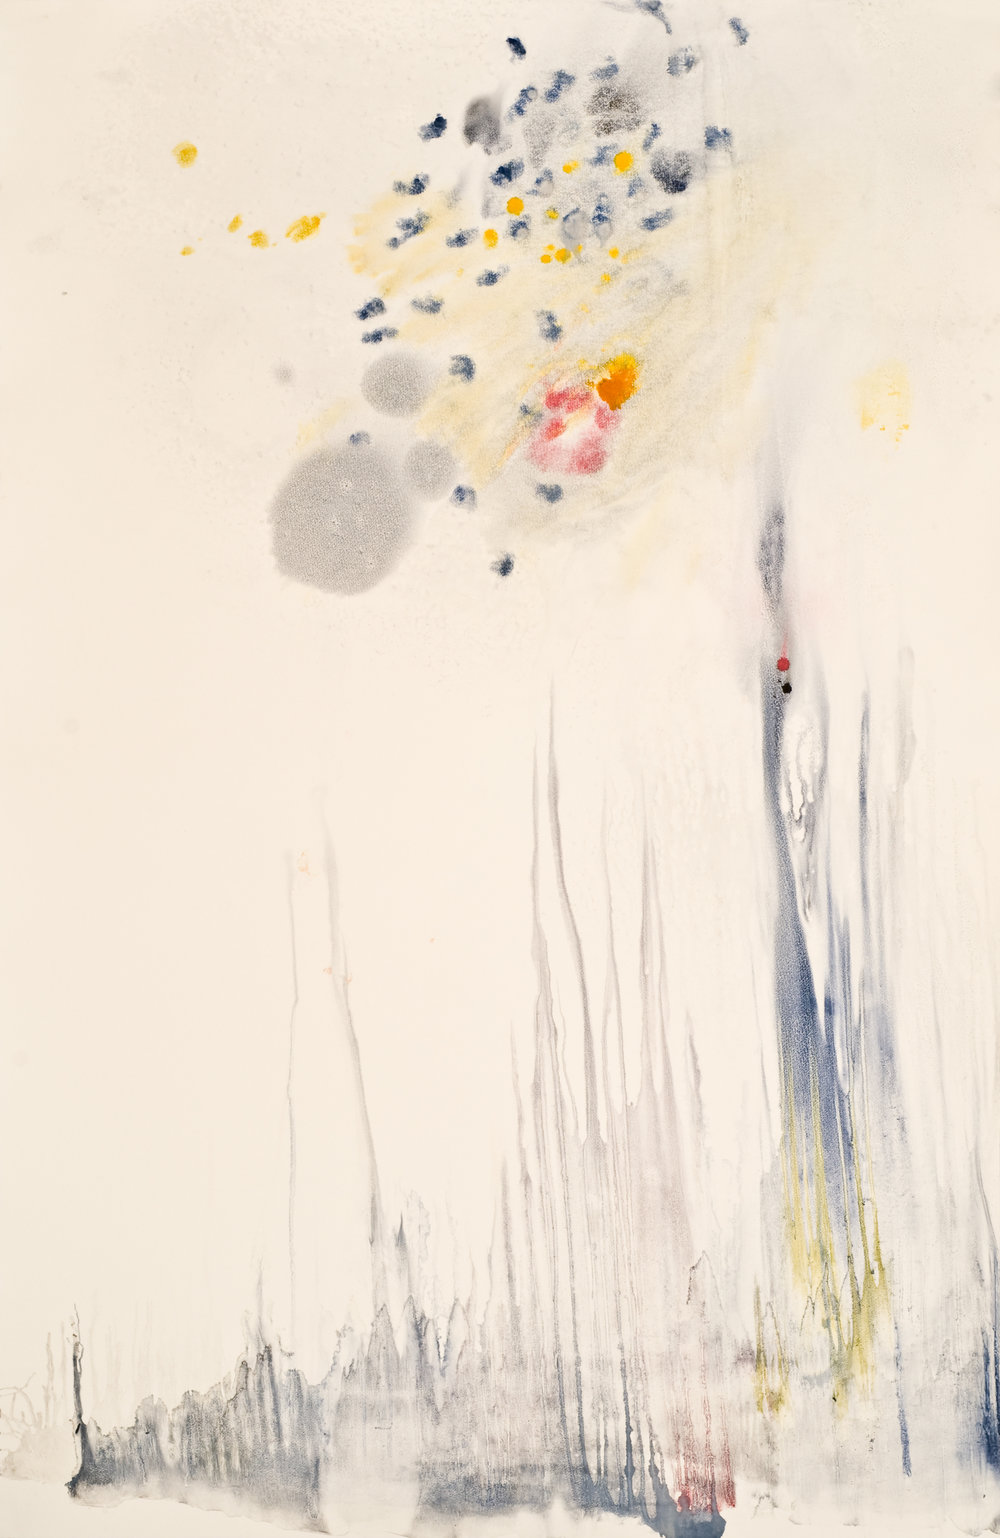 Untitled 4 , 2012  oil on paper monoprint  60 x 40 inches  Wildwood Press